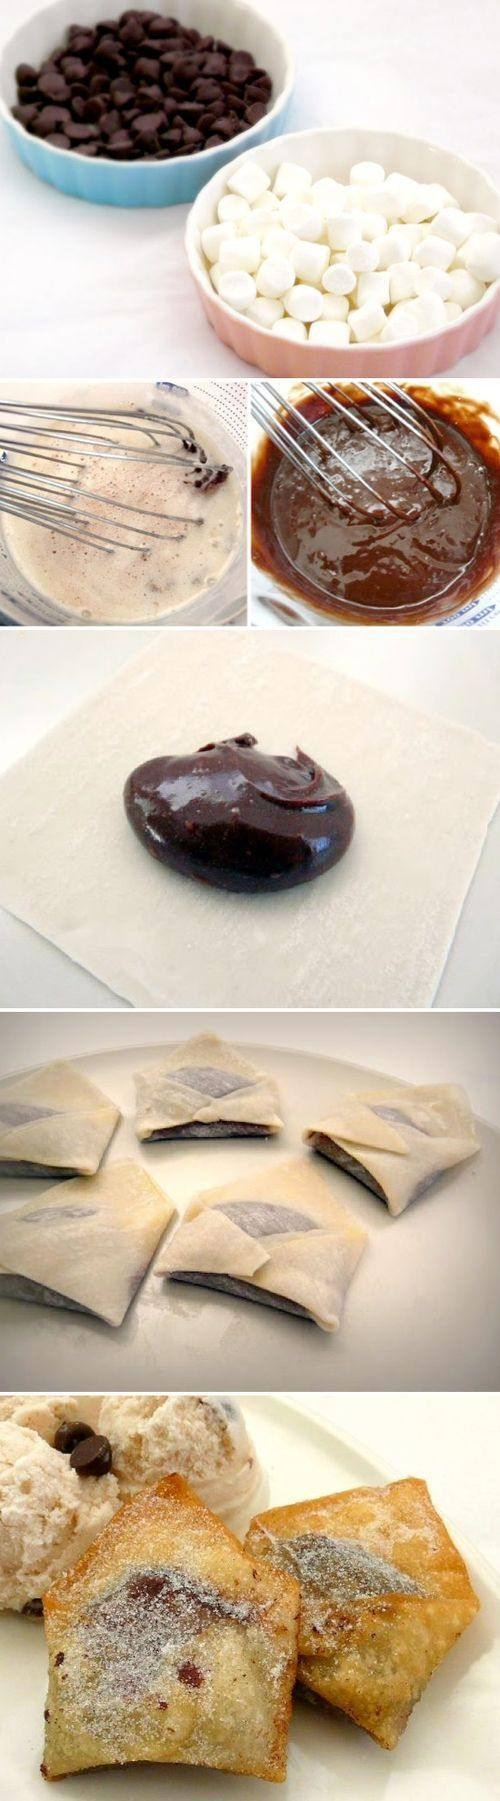 marshmallow chocolate envelopes